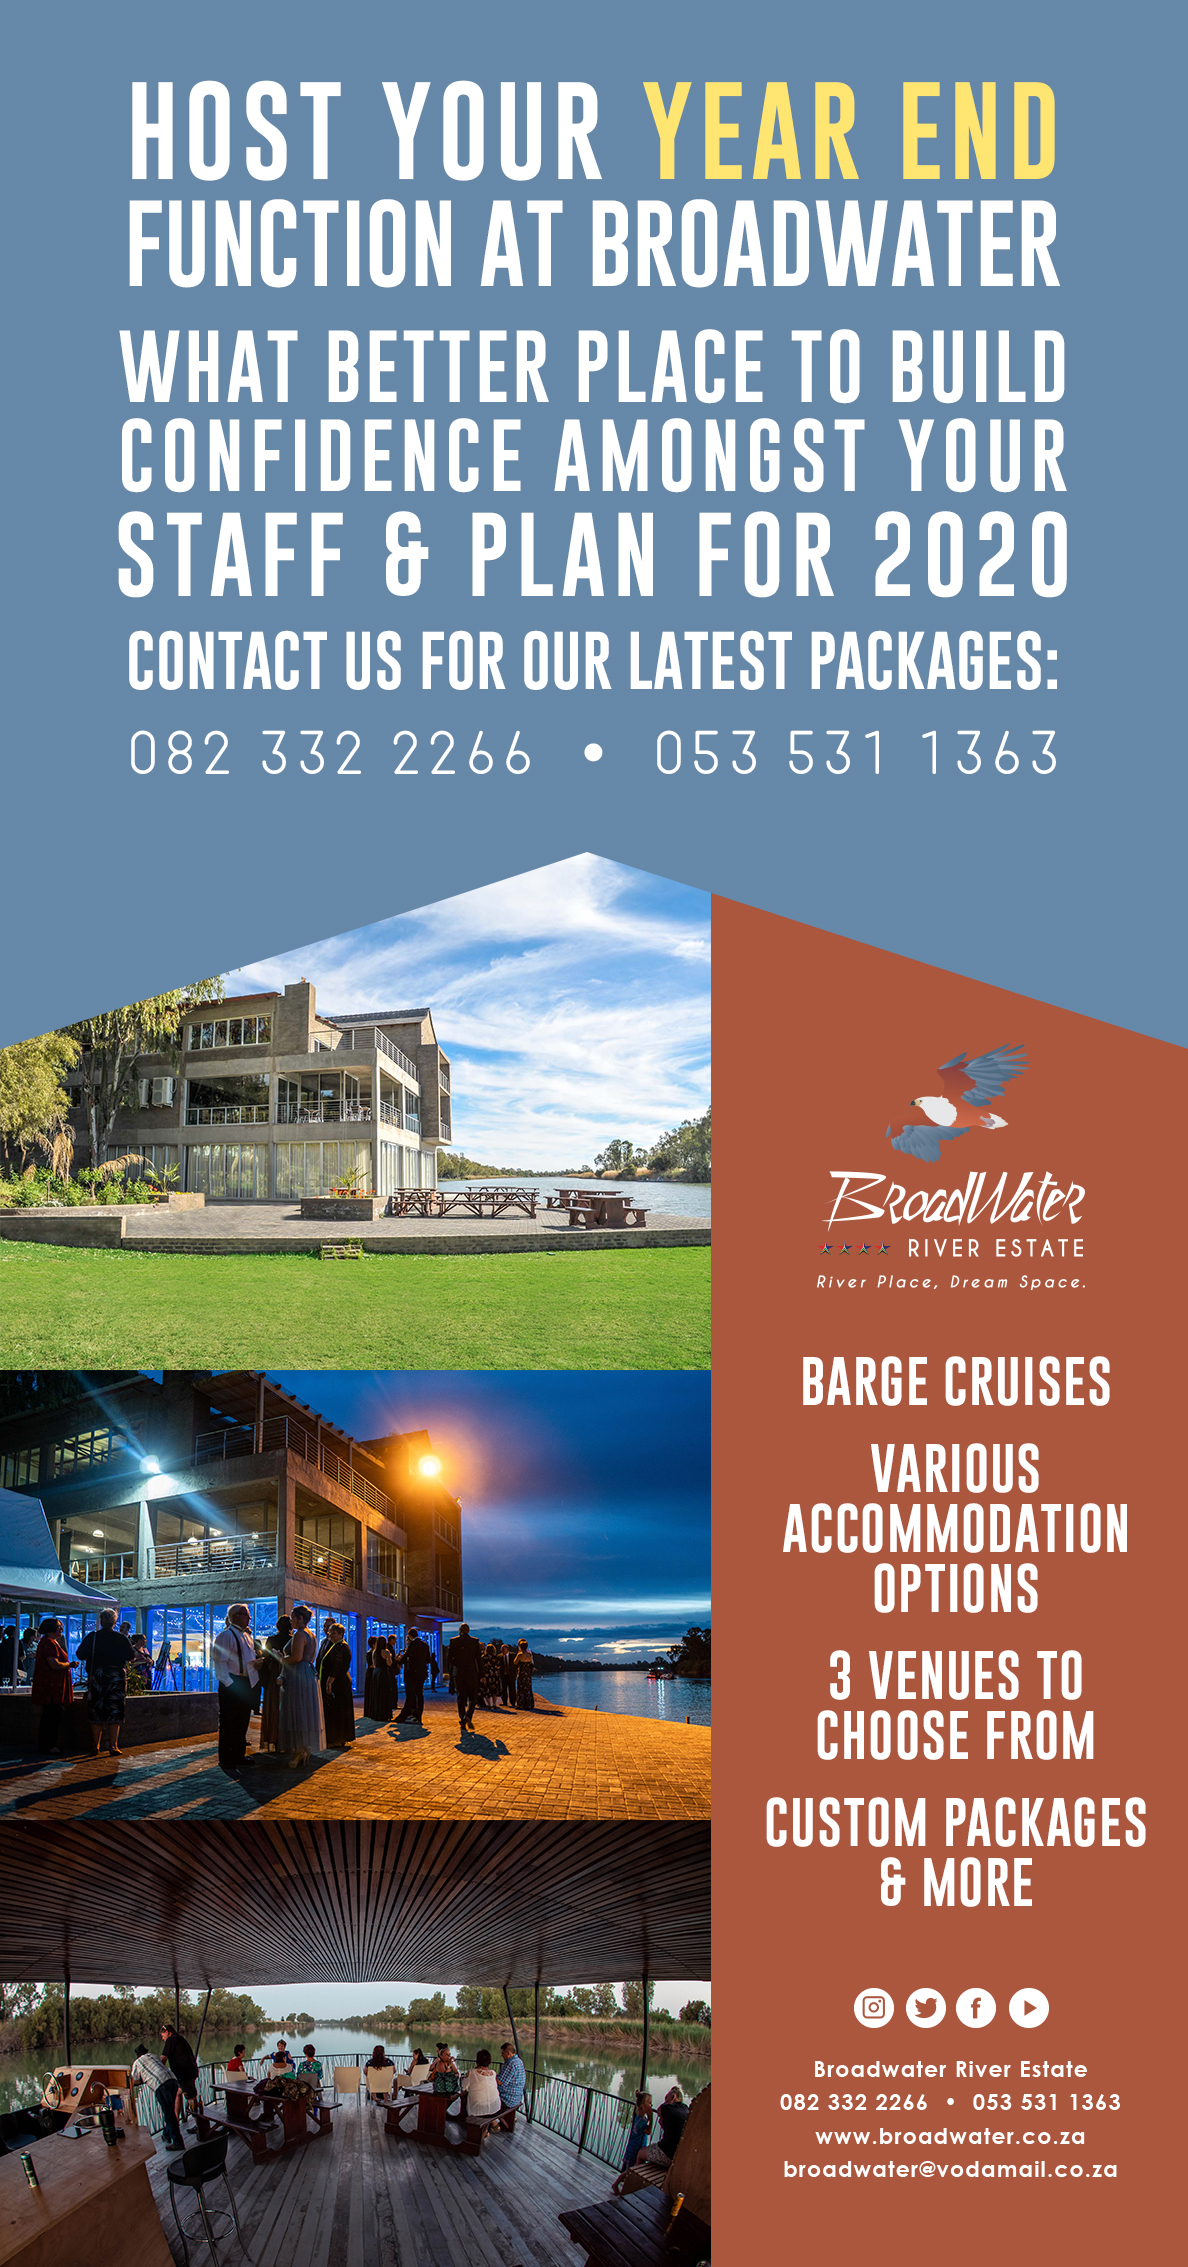 host your year end function, what better place to build confidence among your staff